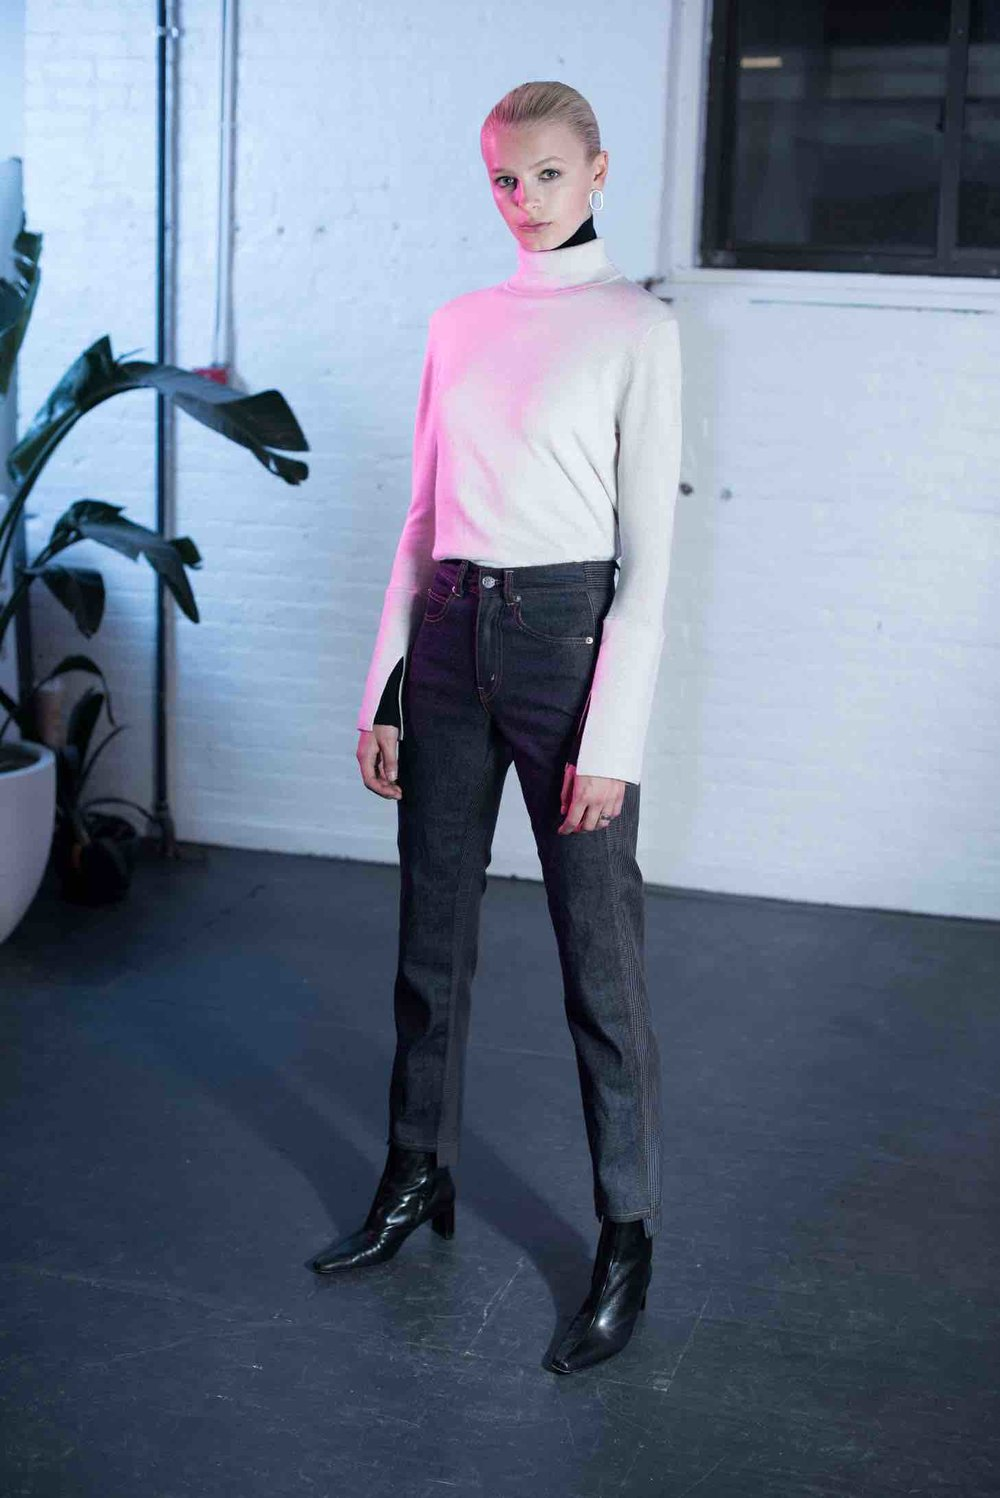 "SAYAKA DAVIS  The central idea behind Sakaya's sophistication is its roots in minimalist art, the concept of ""spacious beauty."" This concept allows for blank space to help define the clean, modern silhouette found in all of her finely crafted work. One of my favorites is the double layer turtleneck in Kelly green with white, black, and a black with white combination."